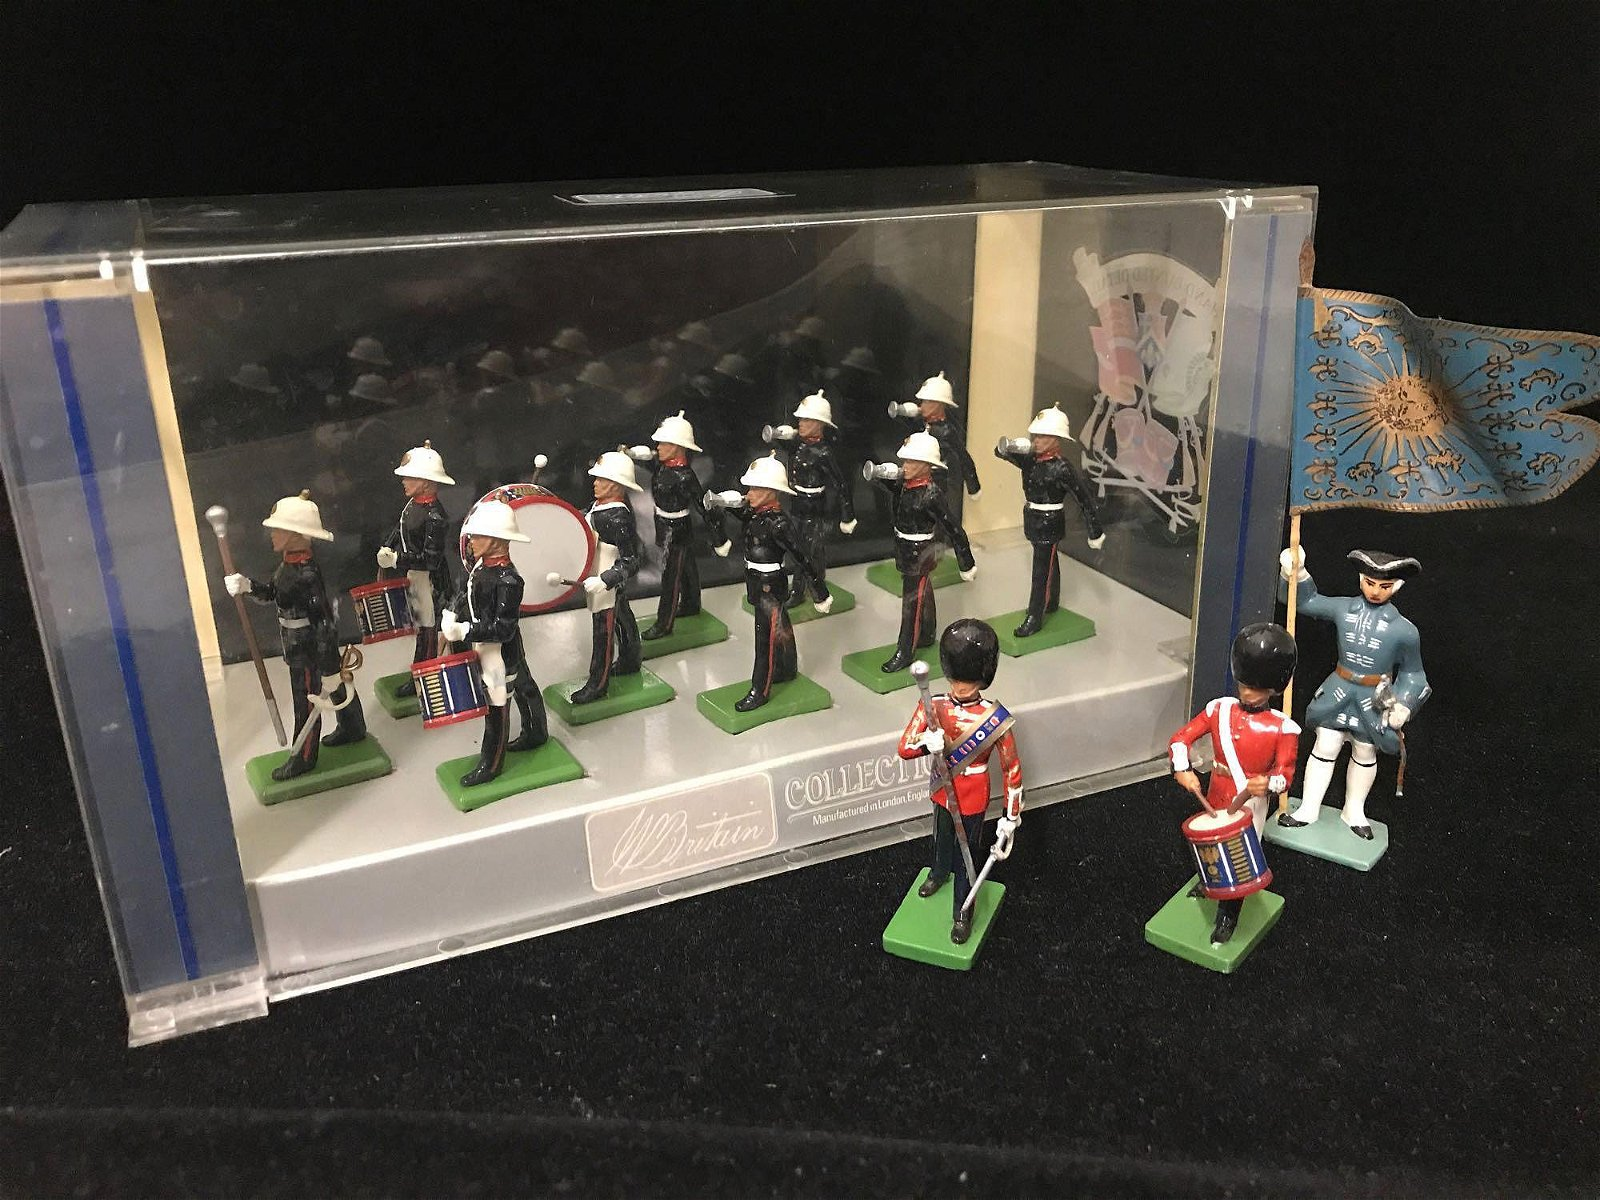 Collection of Britain's Toy Soldiers